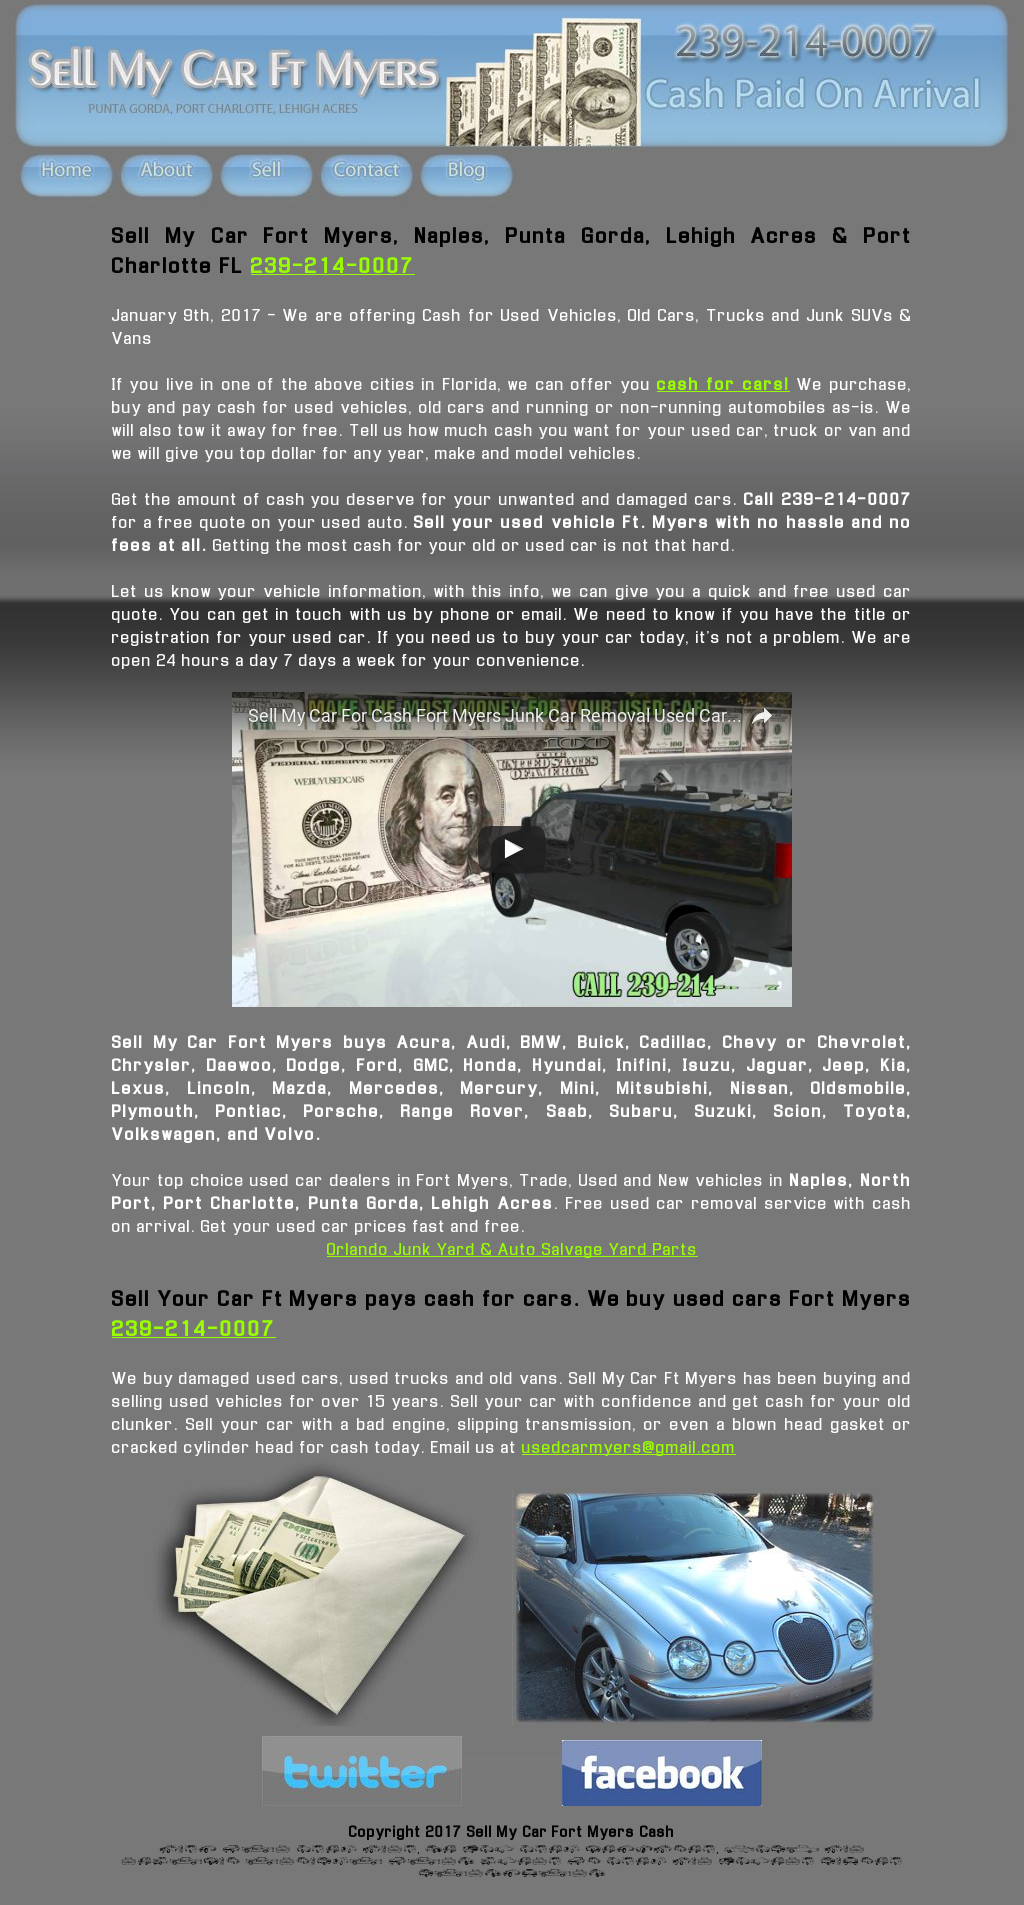 Cash For Used Cars Ft Myers Competitors, Revenue and Employees ...